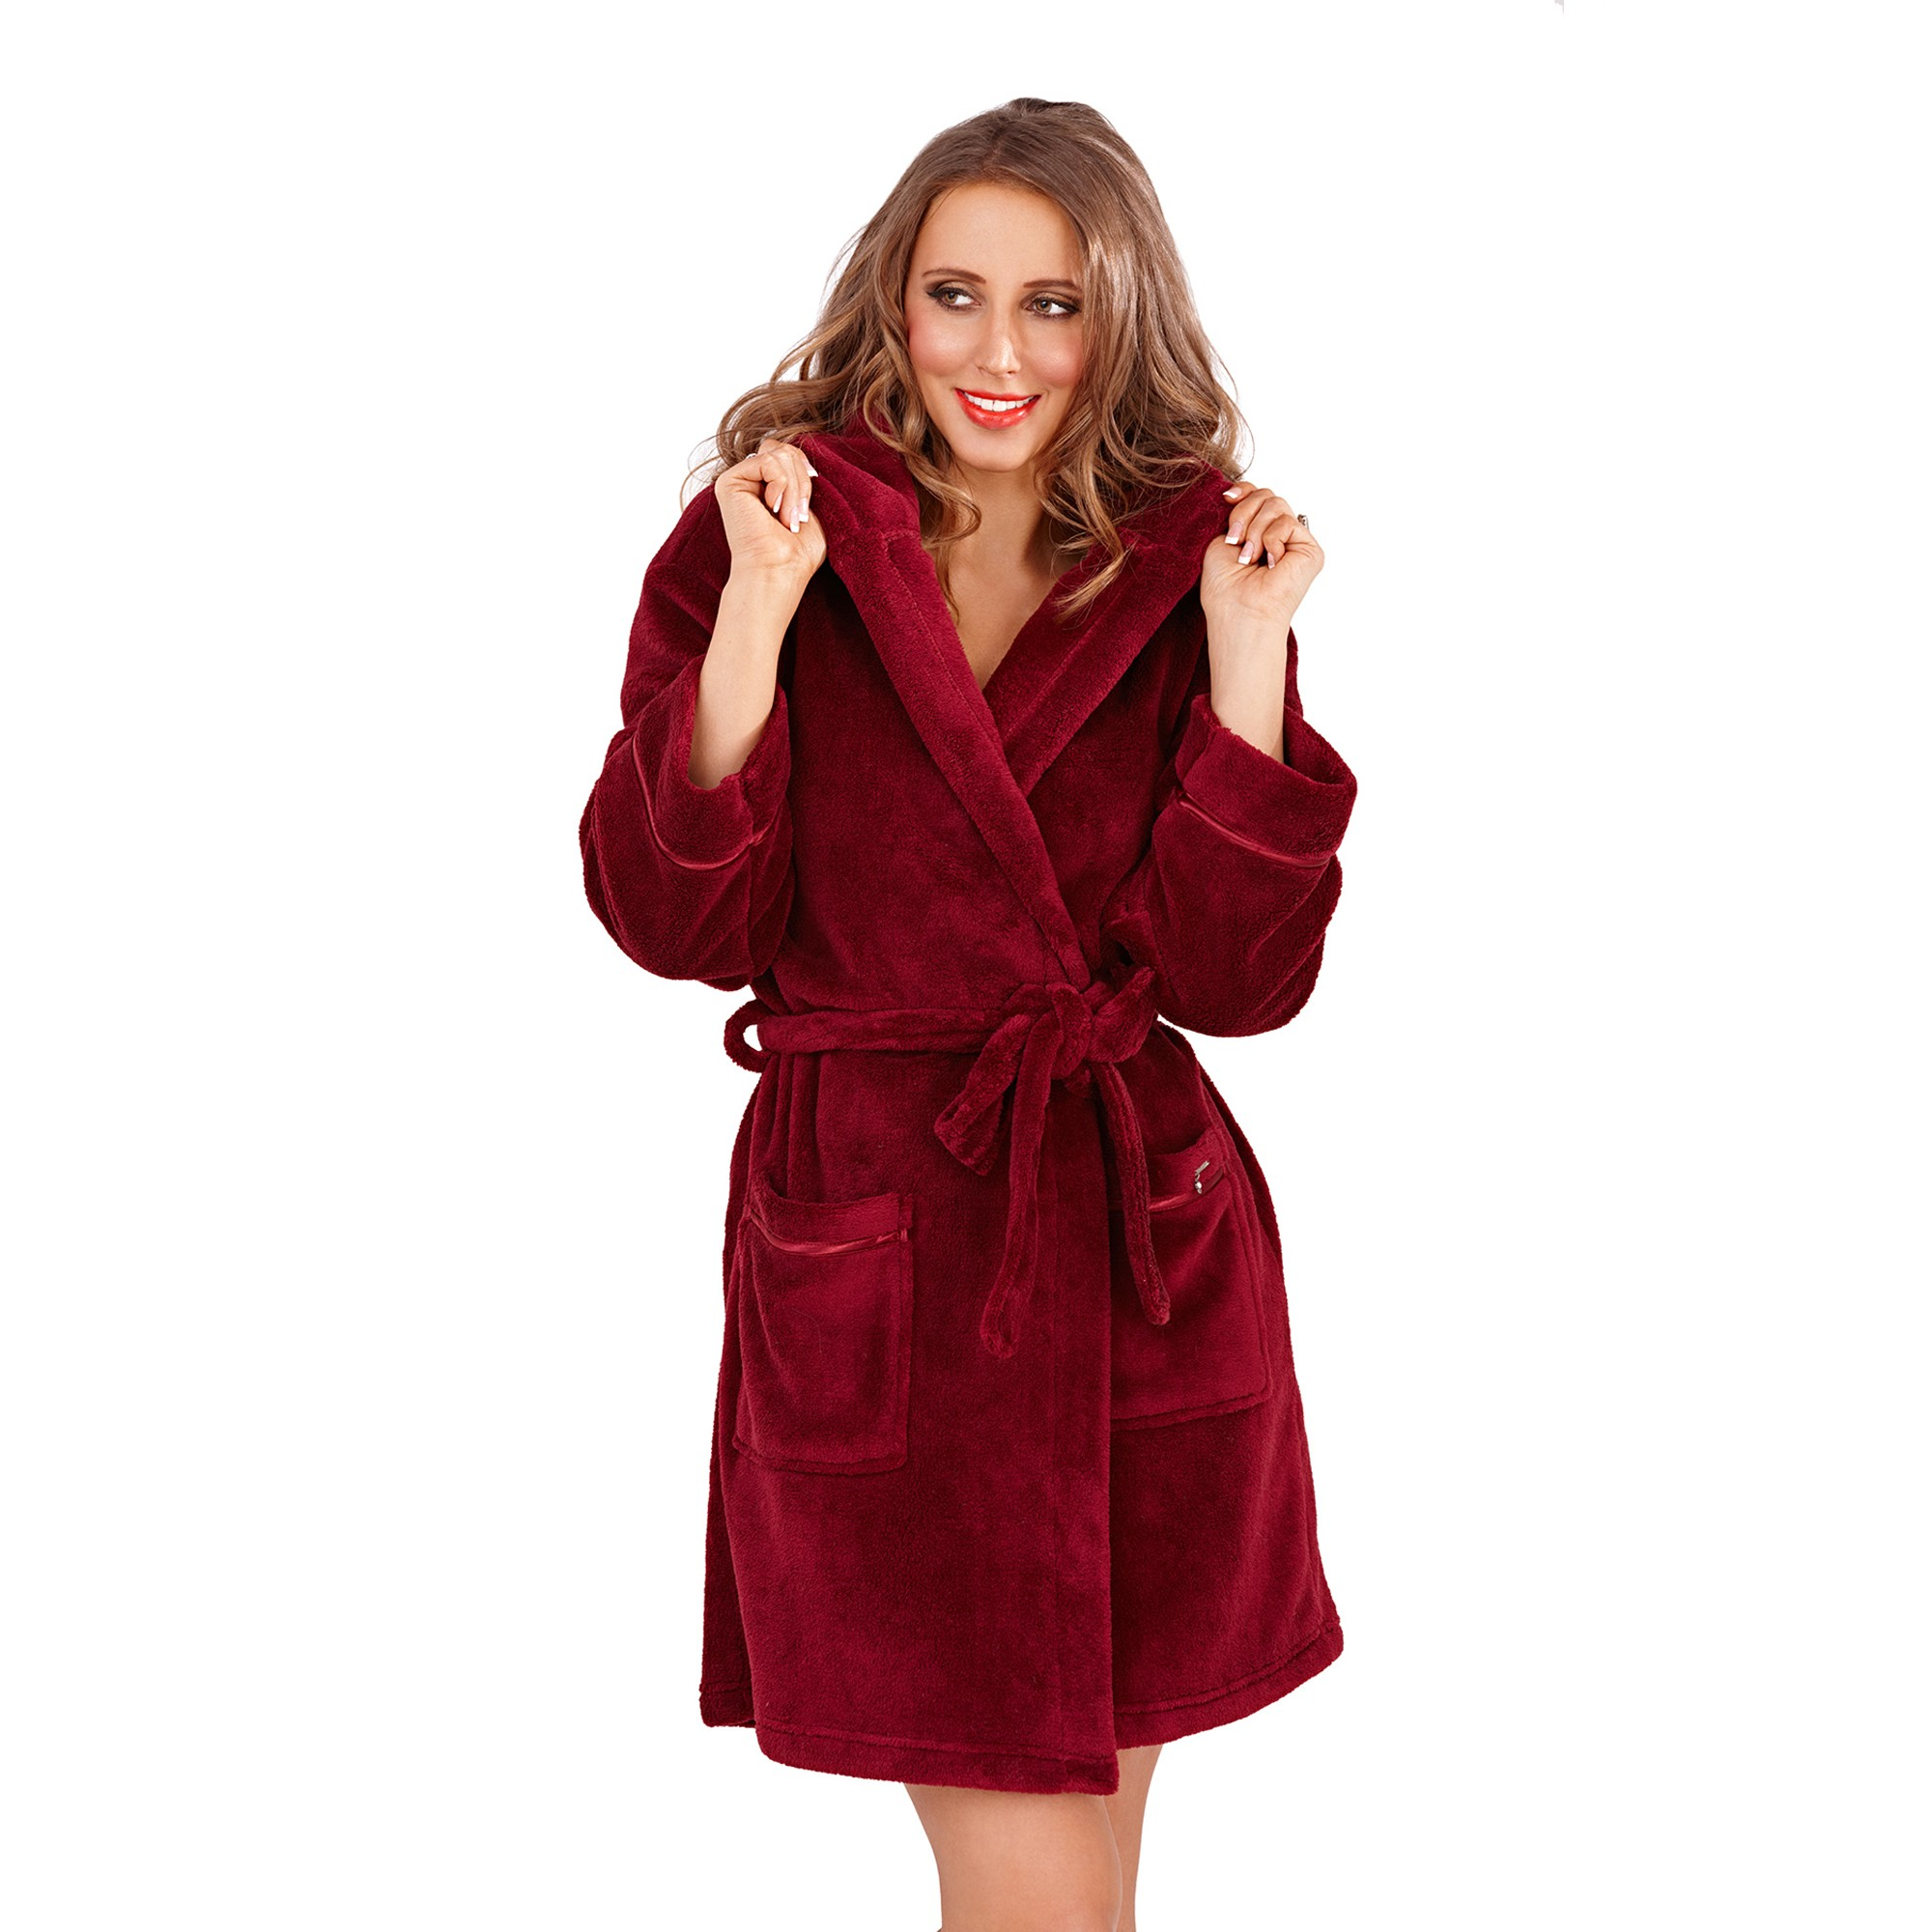 eb622a7232 Ladies Super Soft Hooded Fleece Dressing Gown - Burgundy